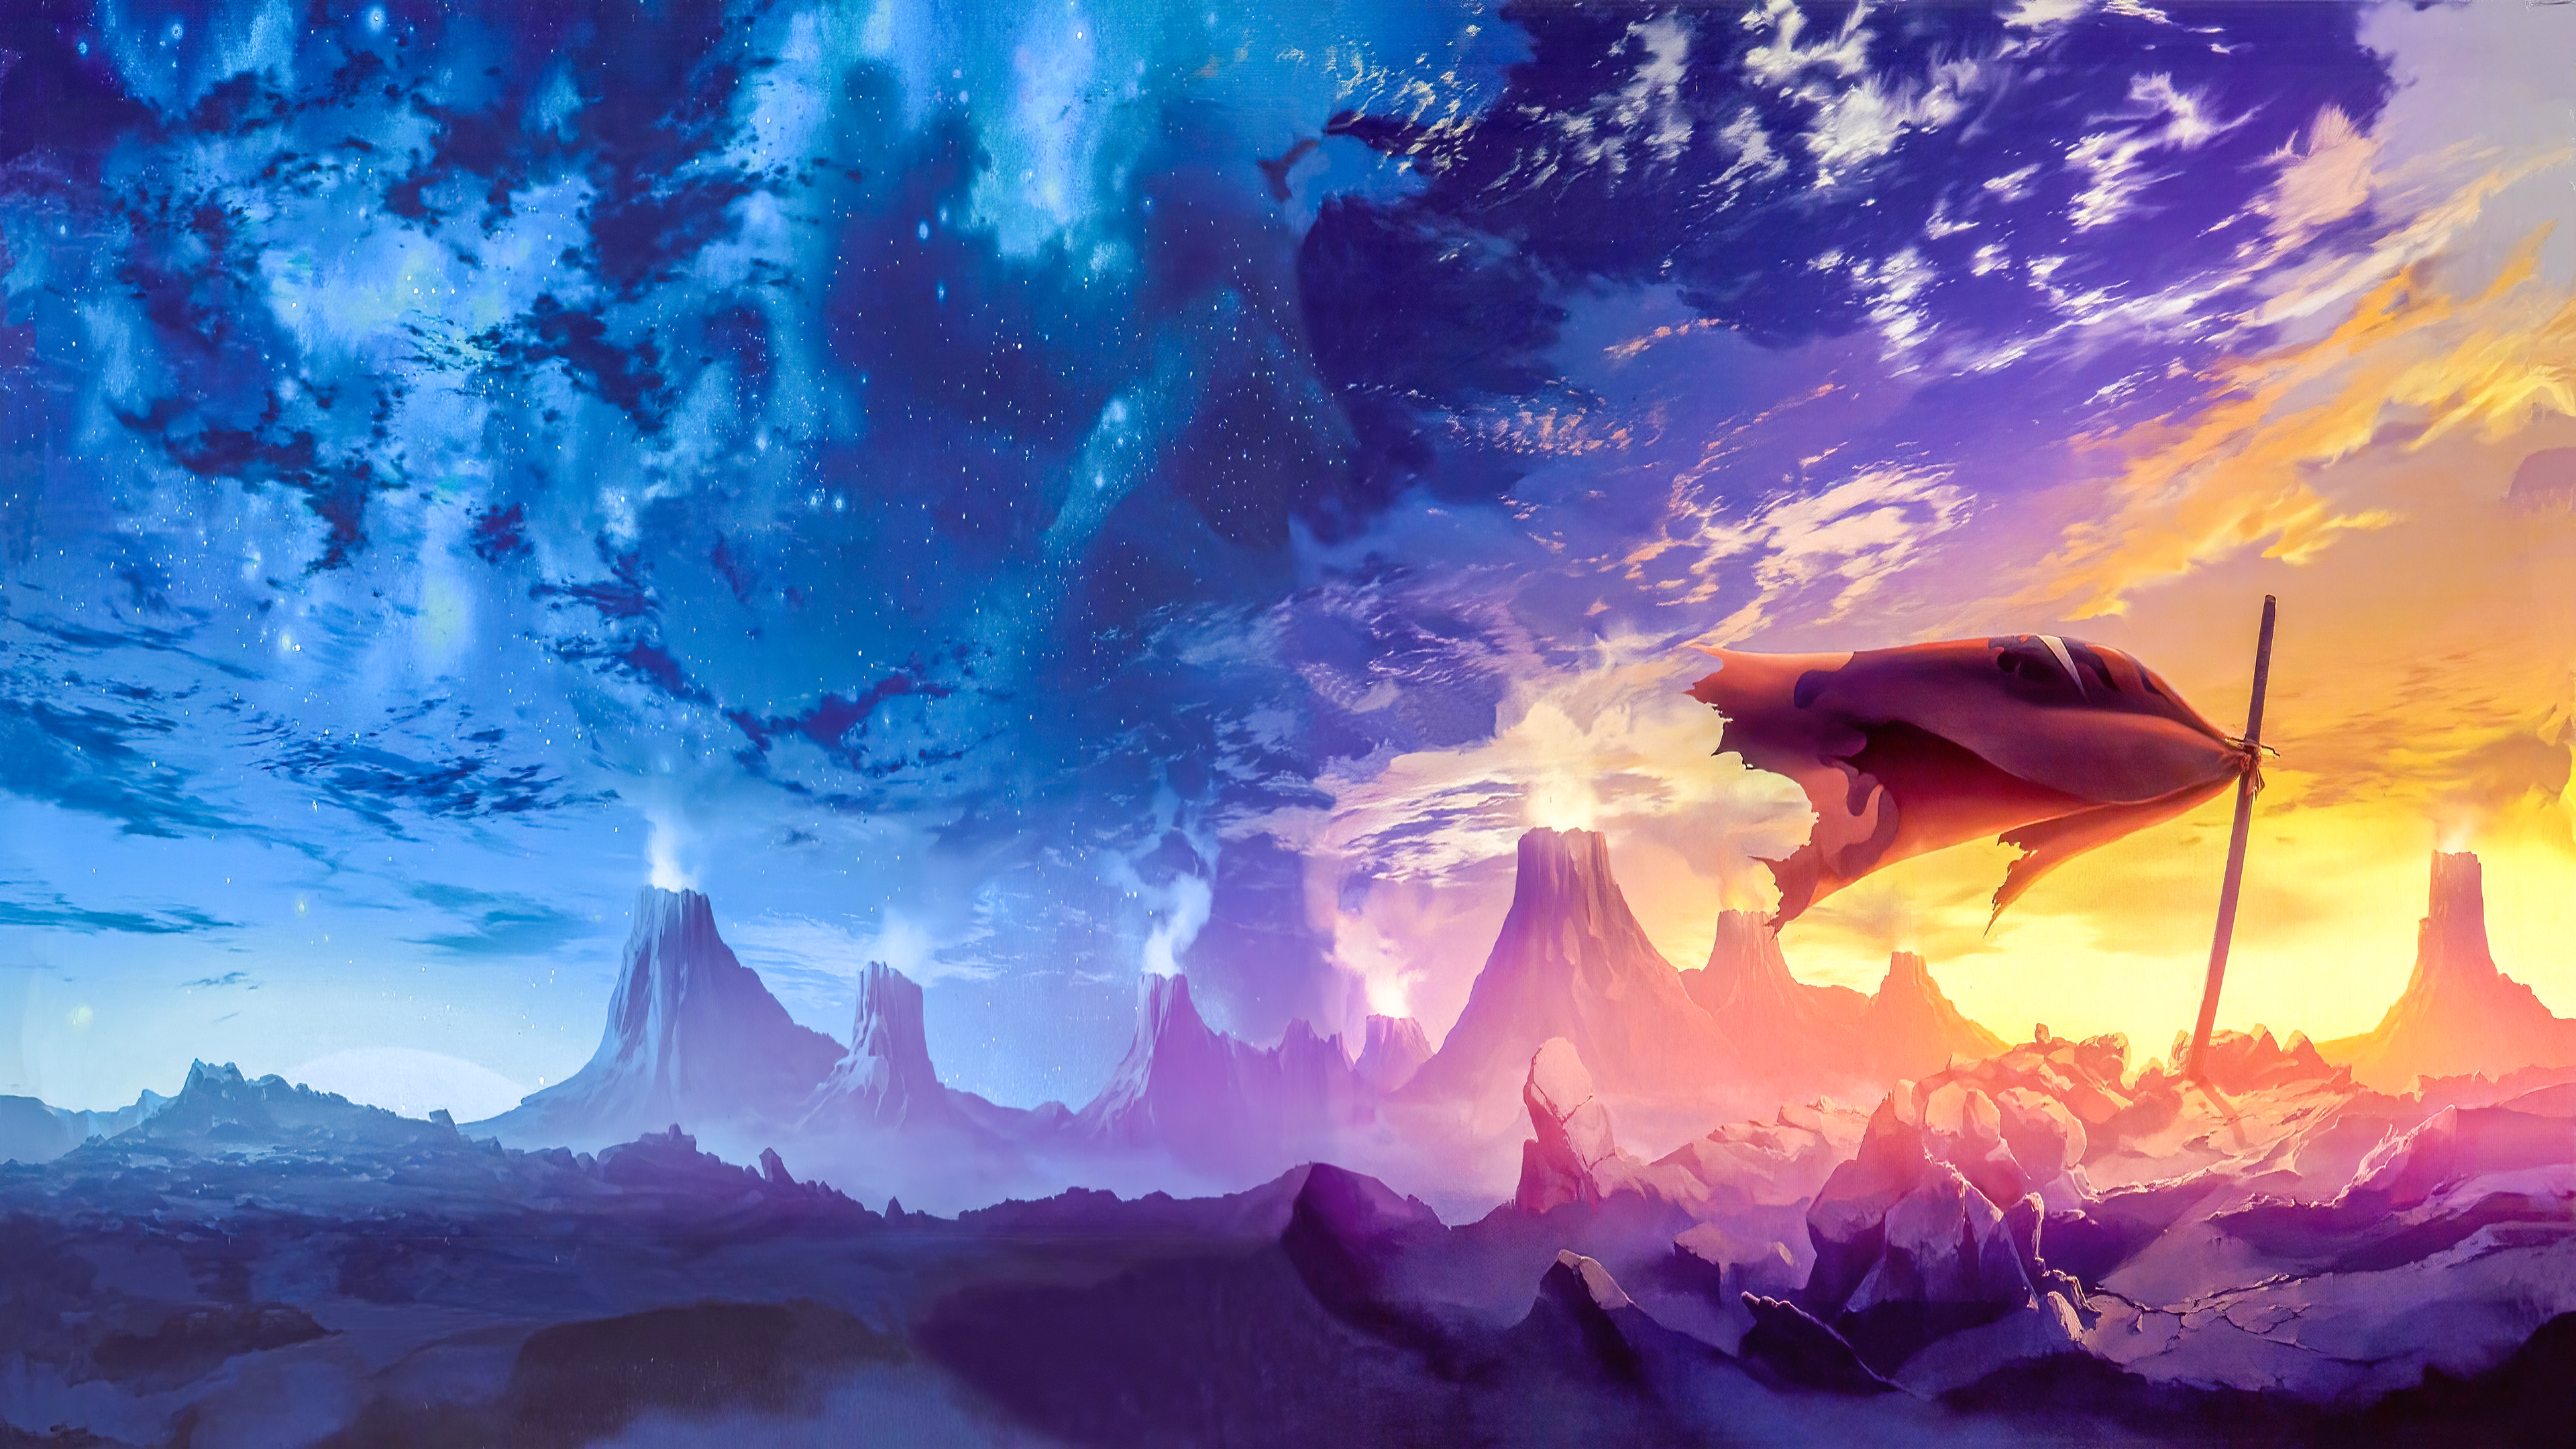 Tengen Toppa Gurren Lagann 4k Hd Anime 4k Wallpapers Images Backgrounds Photos And Pictures